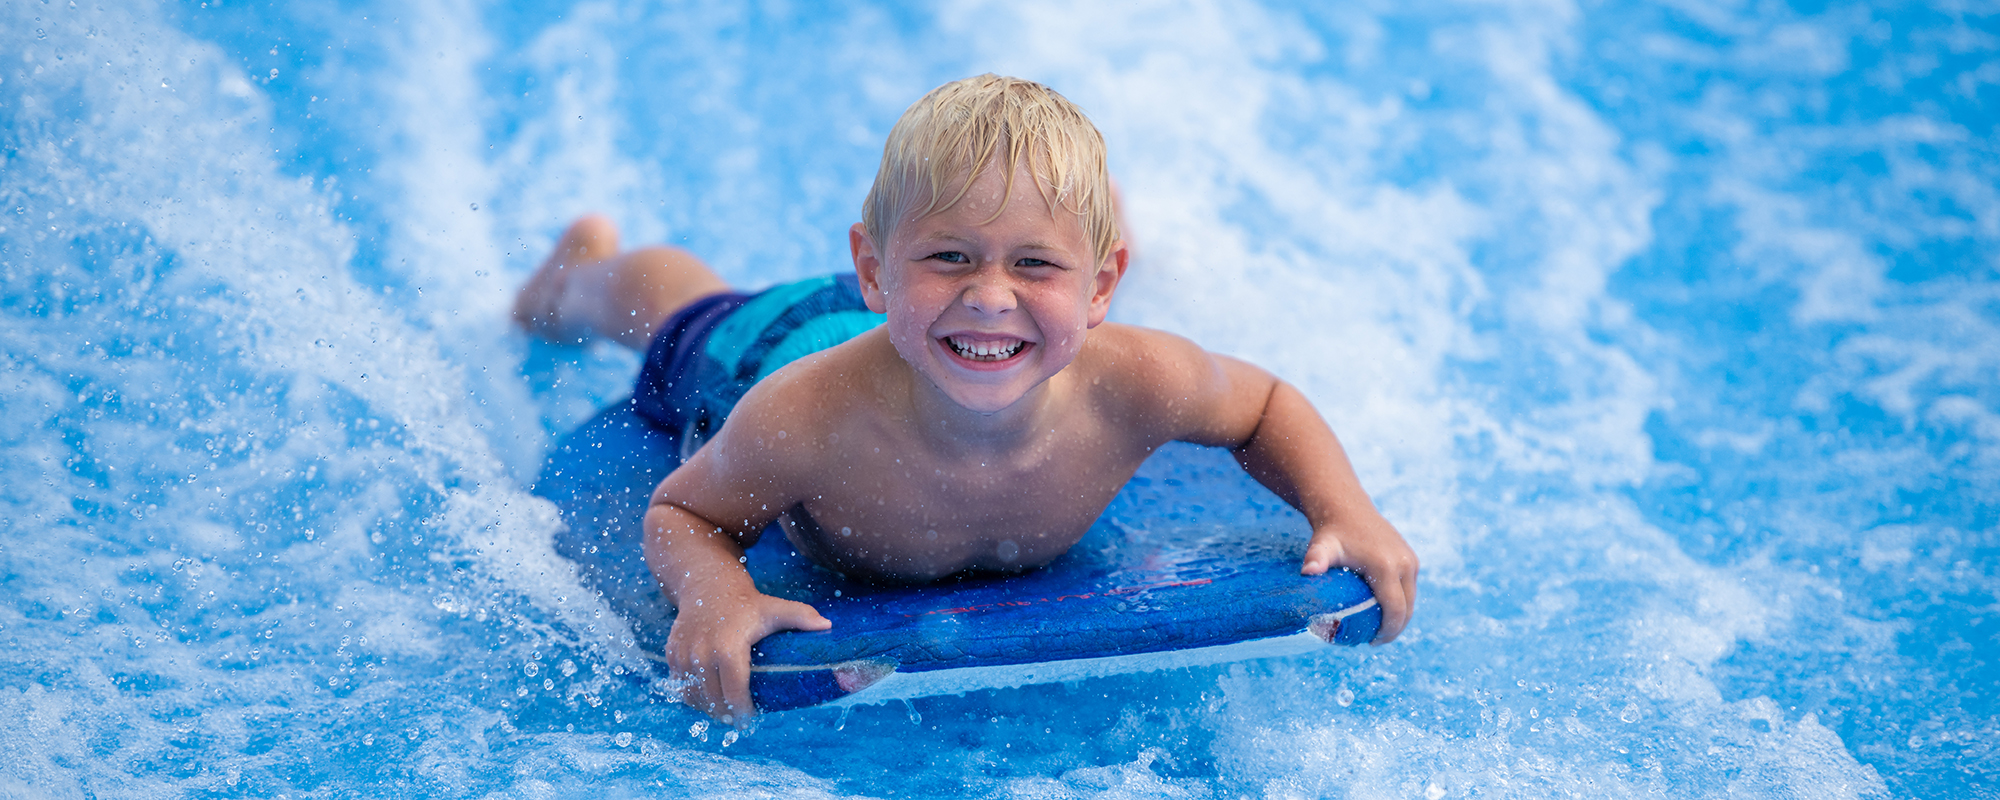 Young boy riding on the flowrider